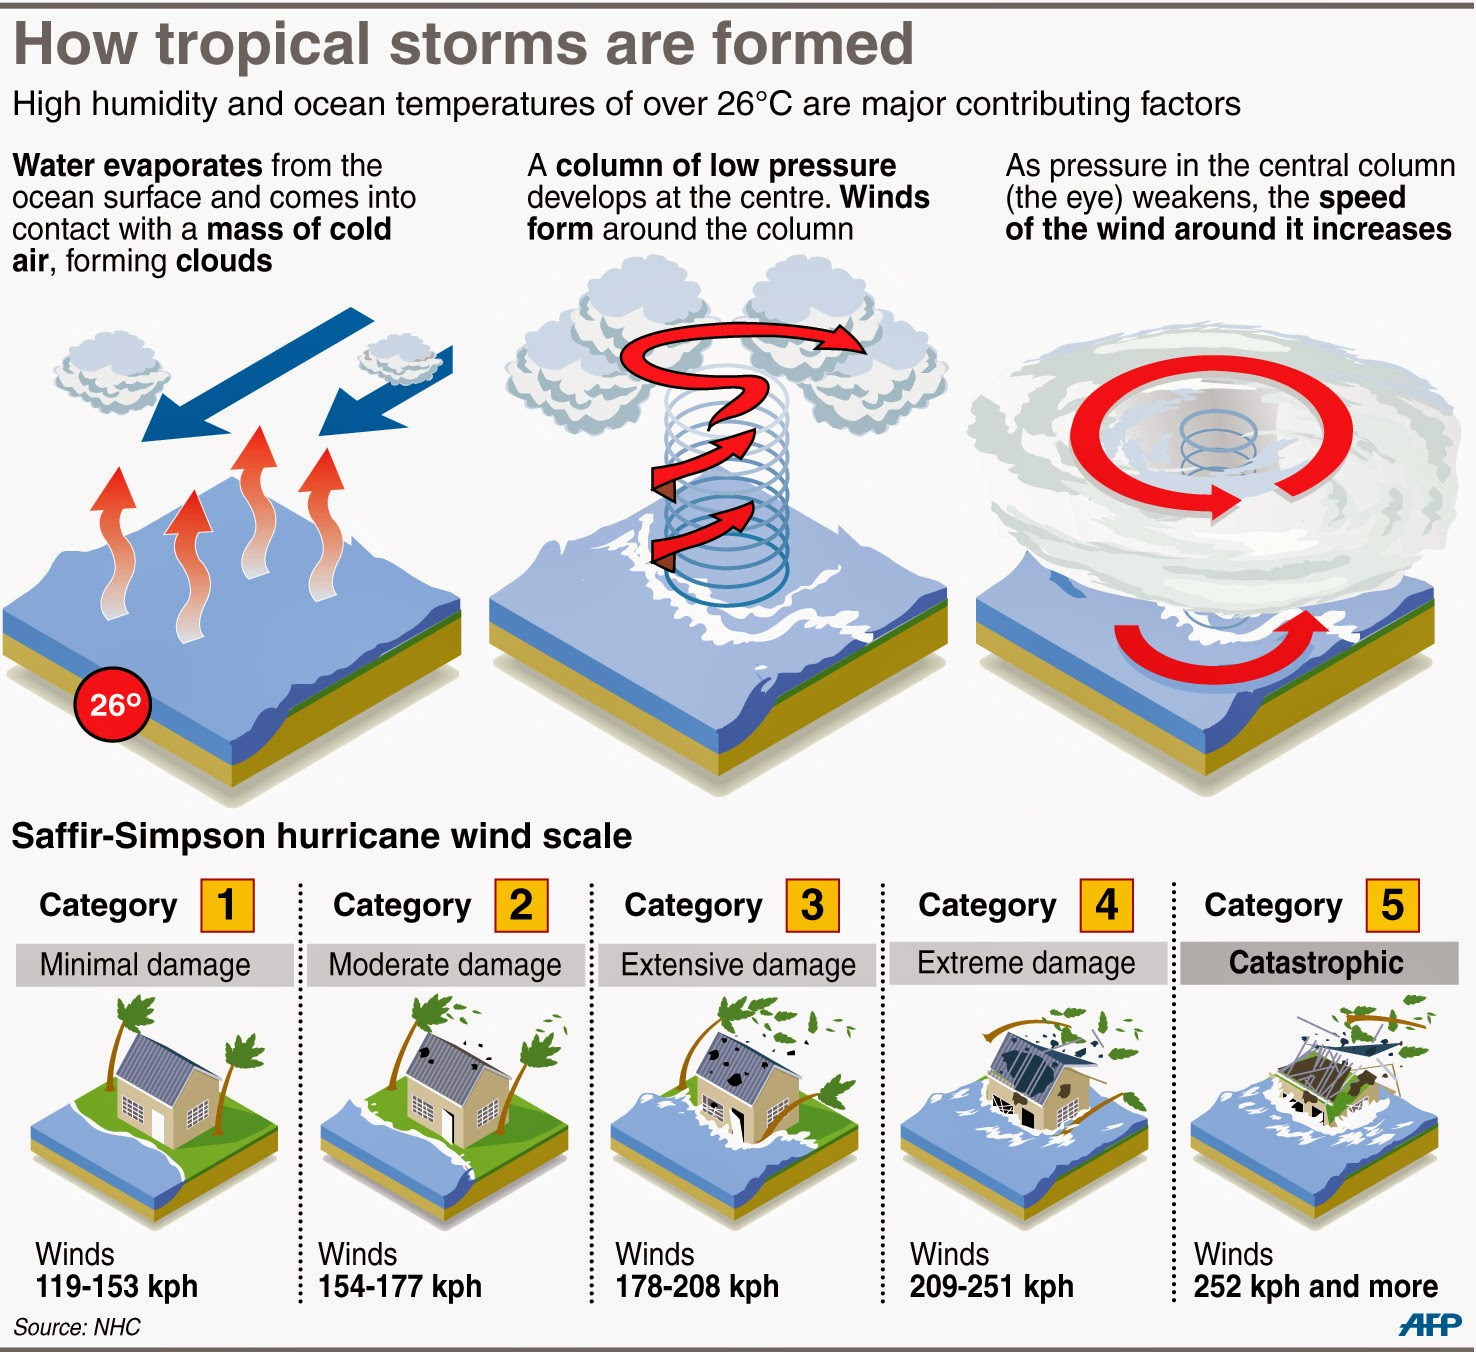 How Does A Tropical Storm Form? – 34 Kiwis